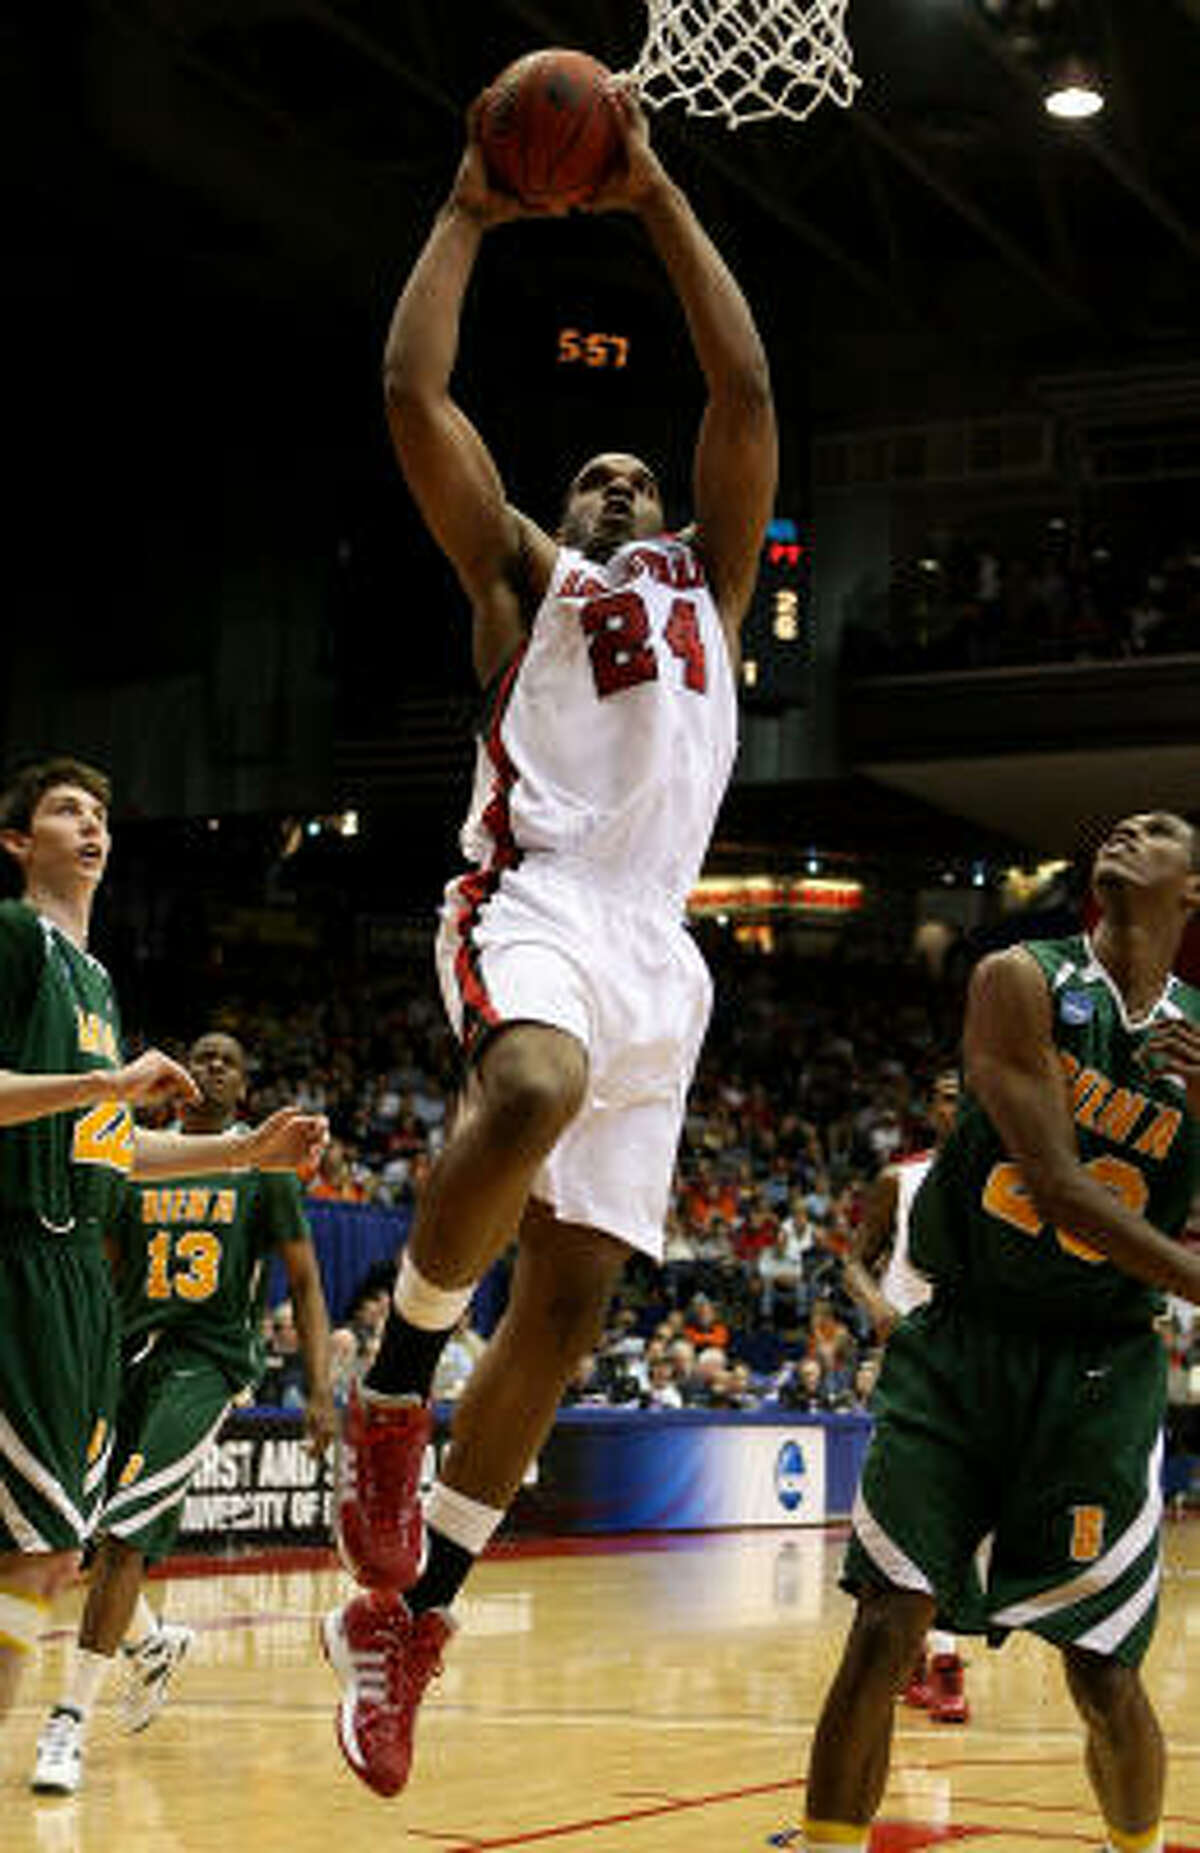 Samardo Samuels (Louisville) Samuels scored 13 points, pulled in eight rebounds and blocked five shots in a second round win over Siena in the Midwest Regional.